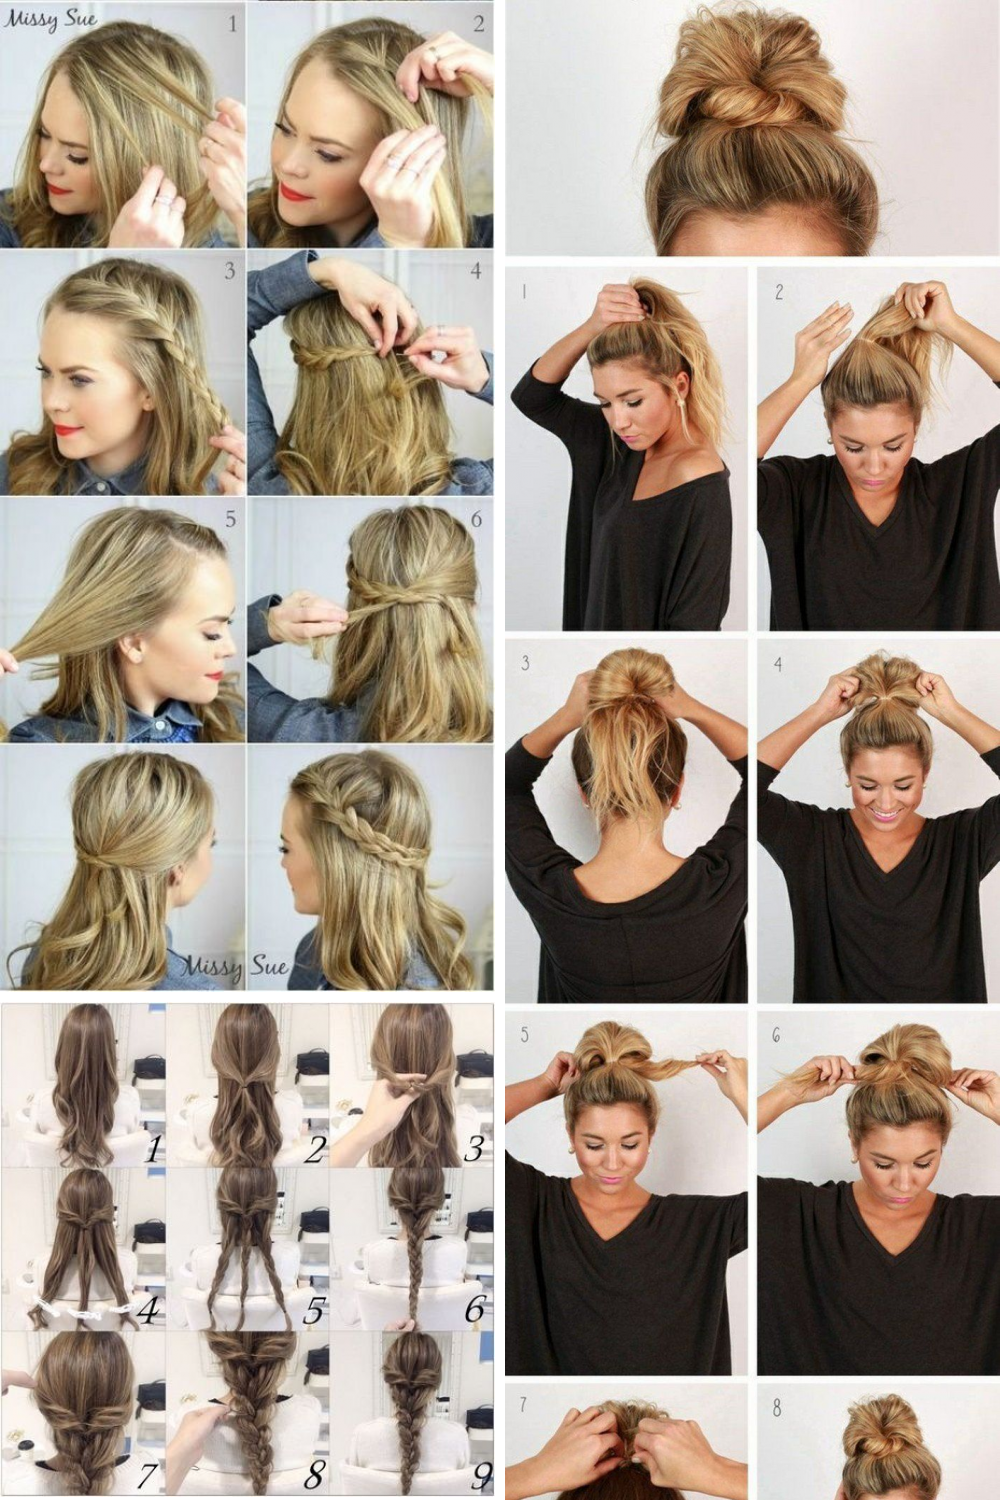 18 Stylish Everyday Hairstyle Pictures Ideas Nurse Hairstyles Everyday Hairstyles Hair Styles